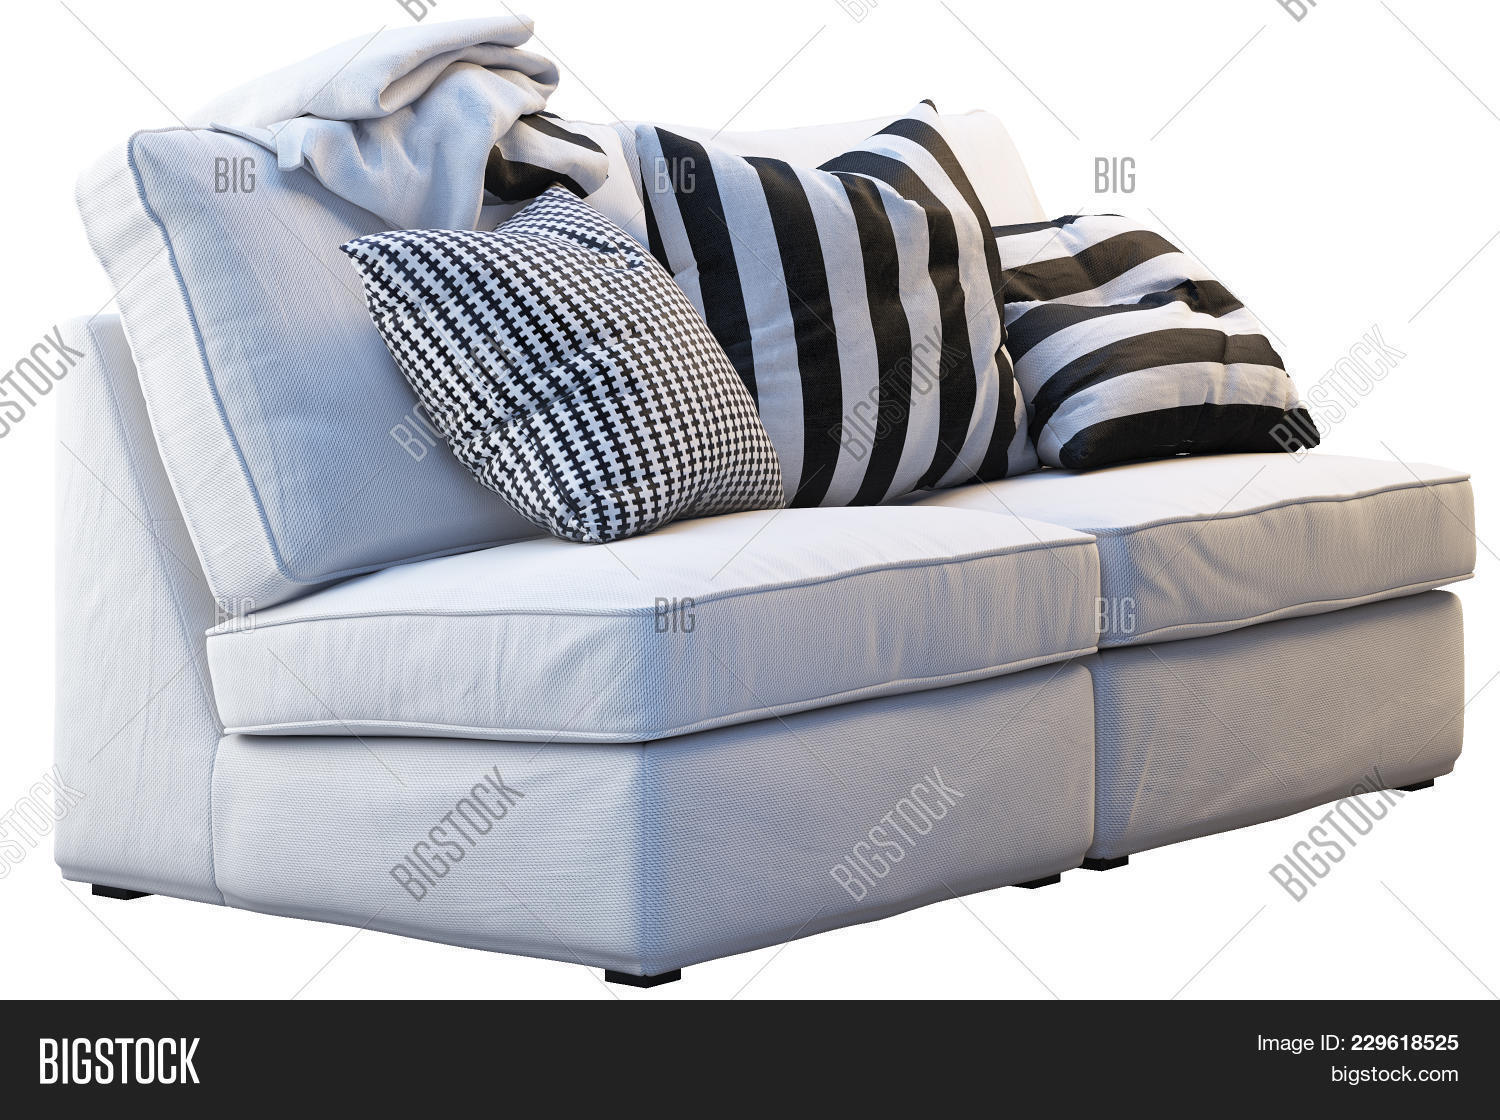 Superb White Sofa Pillows Image Photo Free Trial Bigstock Squirreltailoven Fun Painted Chair Ideas Images Squirreltailovenorg